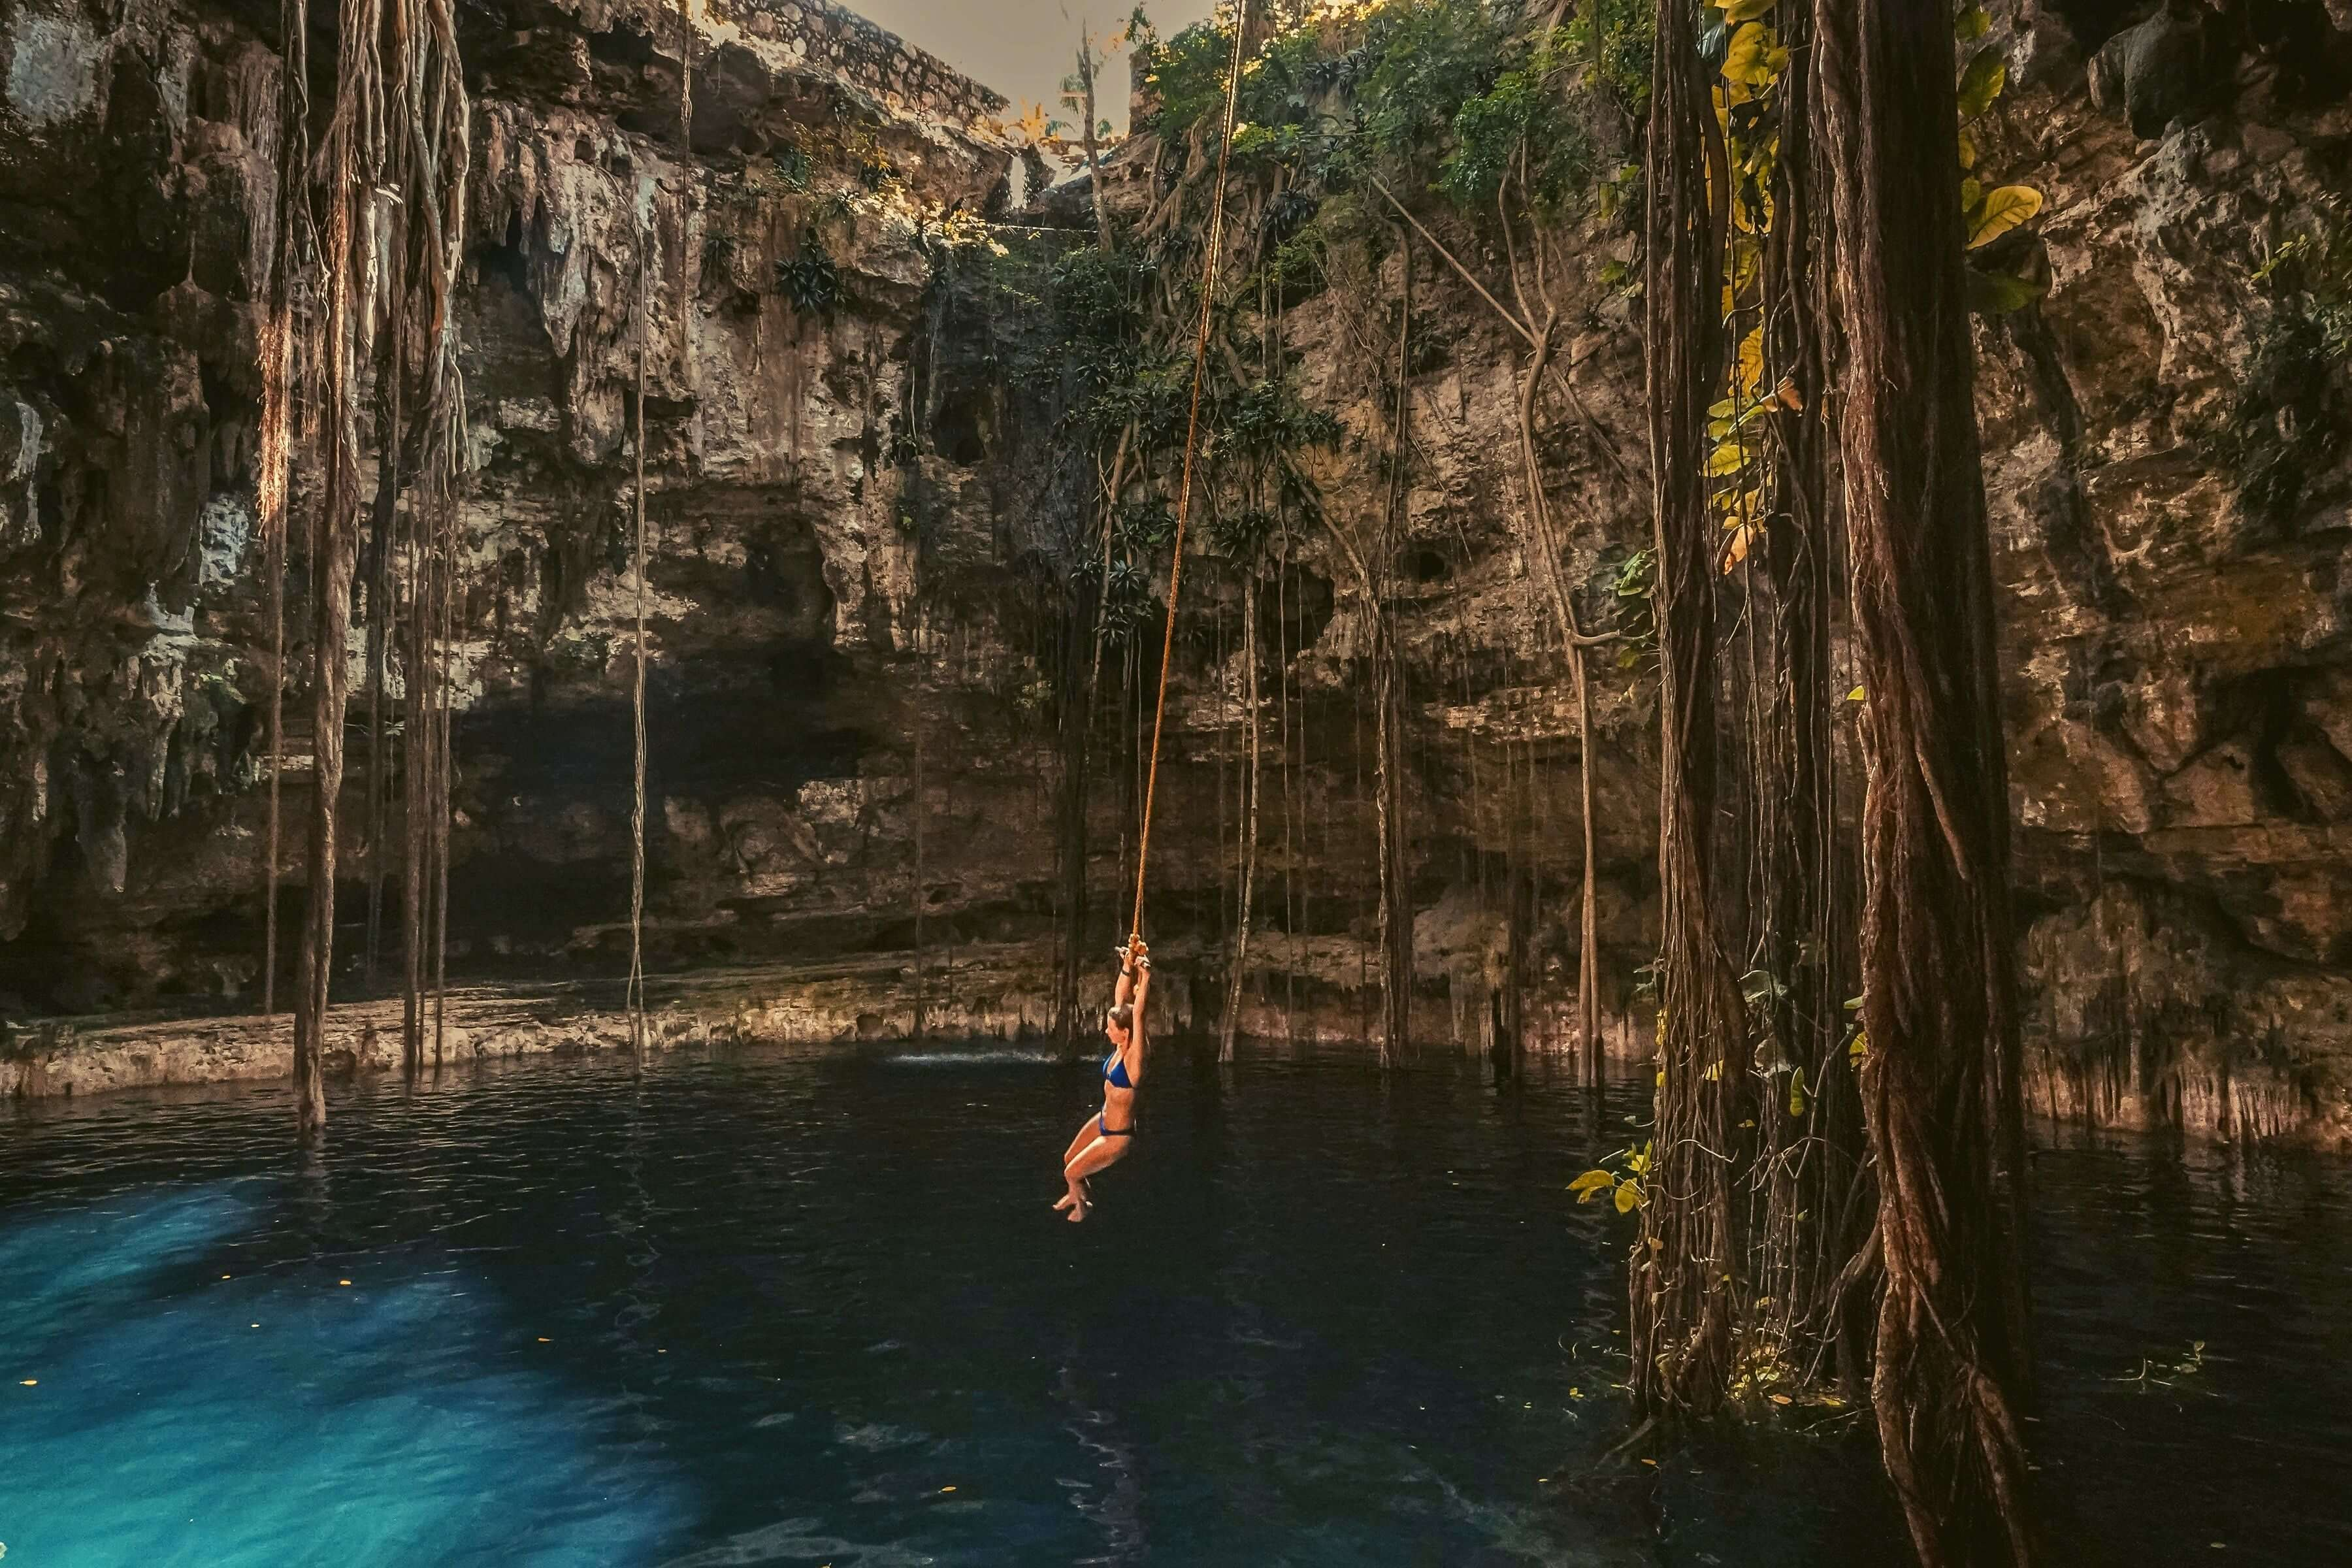 Woman swinging above a natural pool